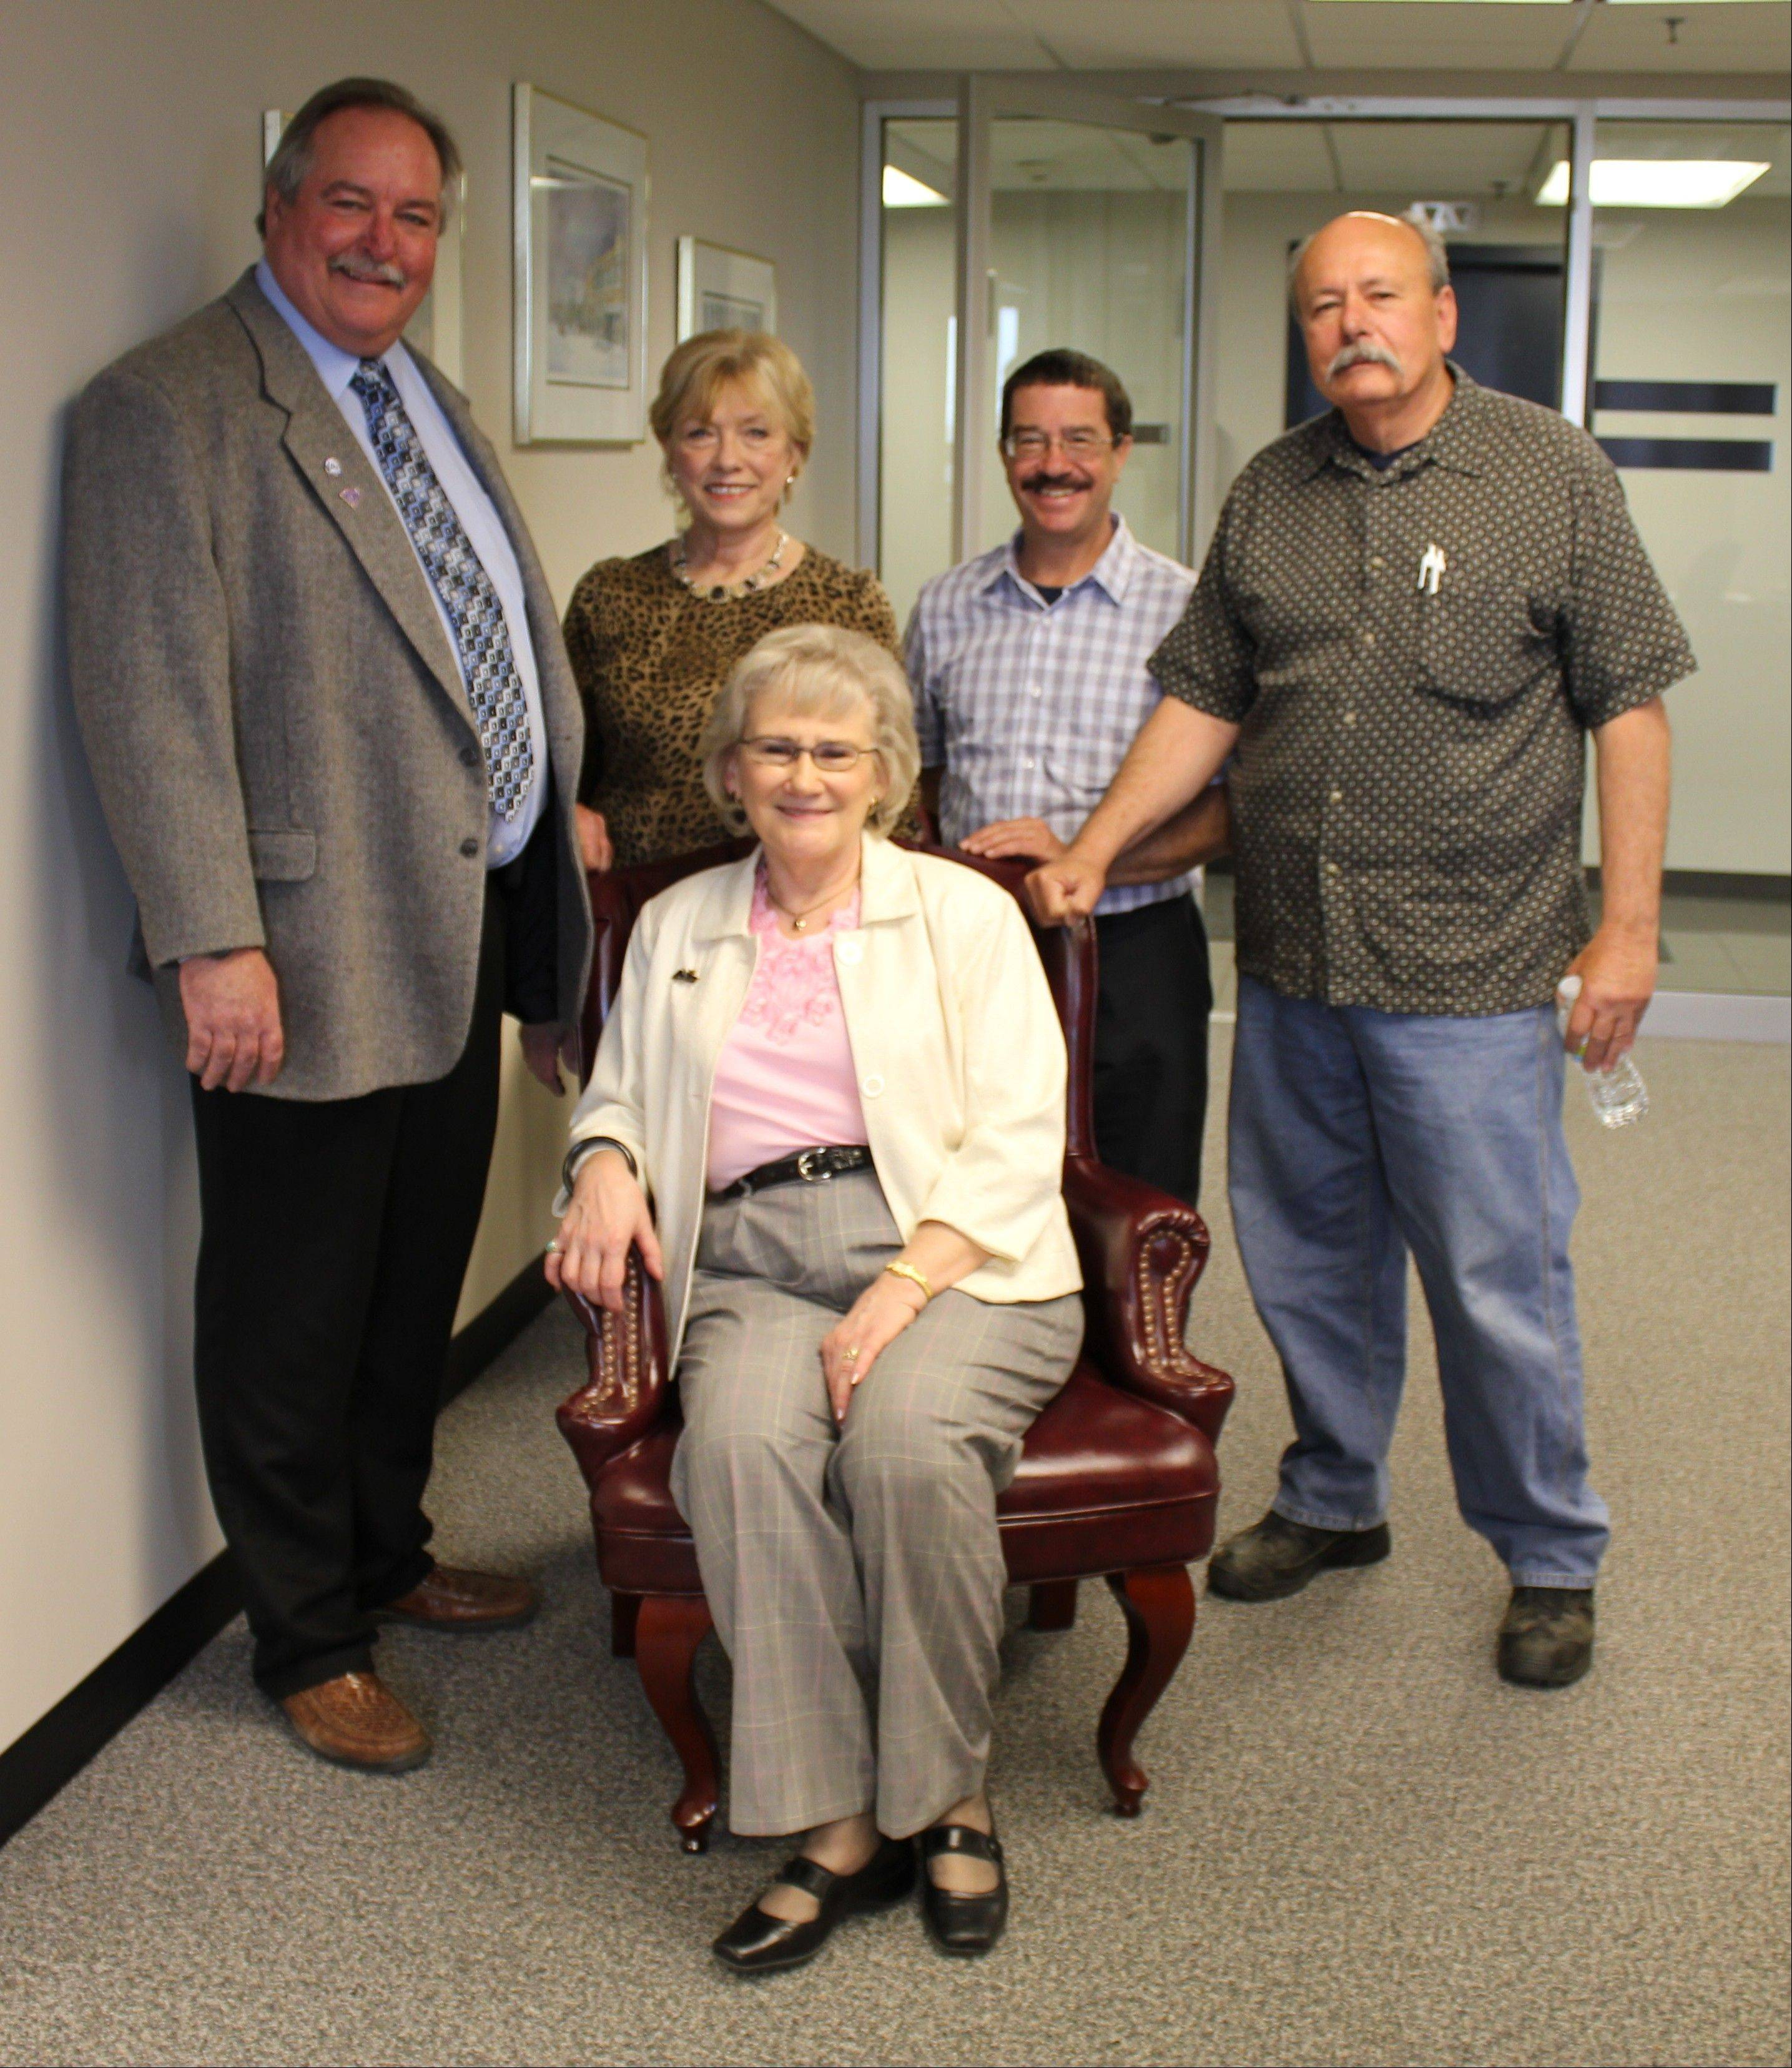 Longtime Des Plaines mayor's secretary Donna Catlett retired this week after serving 16 years under three elected mayors, and four acting mayors. From left, acting Mayor Mark Walsten, and aldermen, Patti Haugeberg (1st Ward), Mike Charewicz (8th), and John Robinson (2nd), bid farewell to Catlett, seated, Thursday.